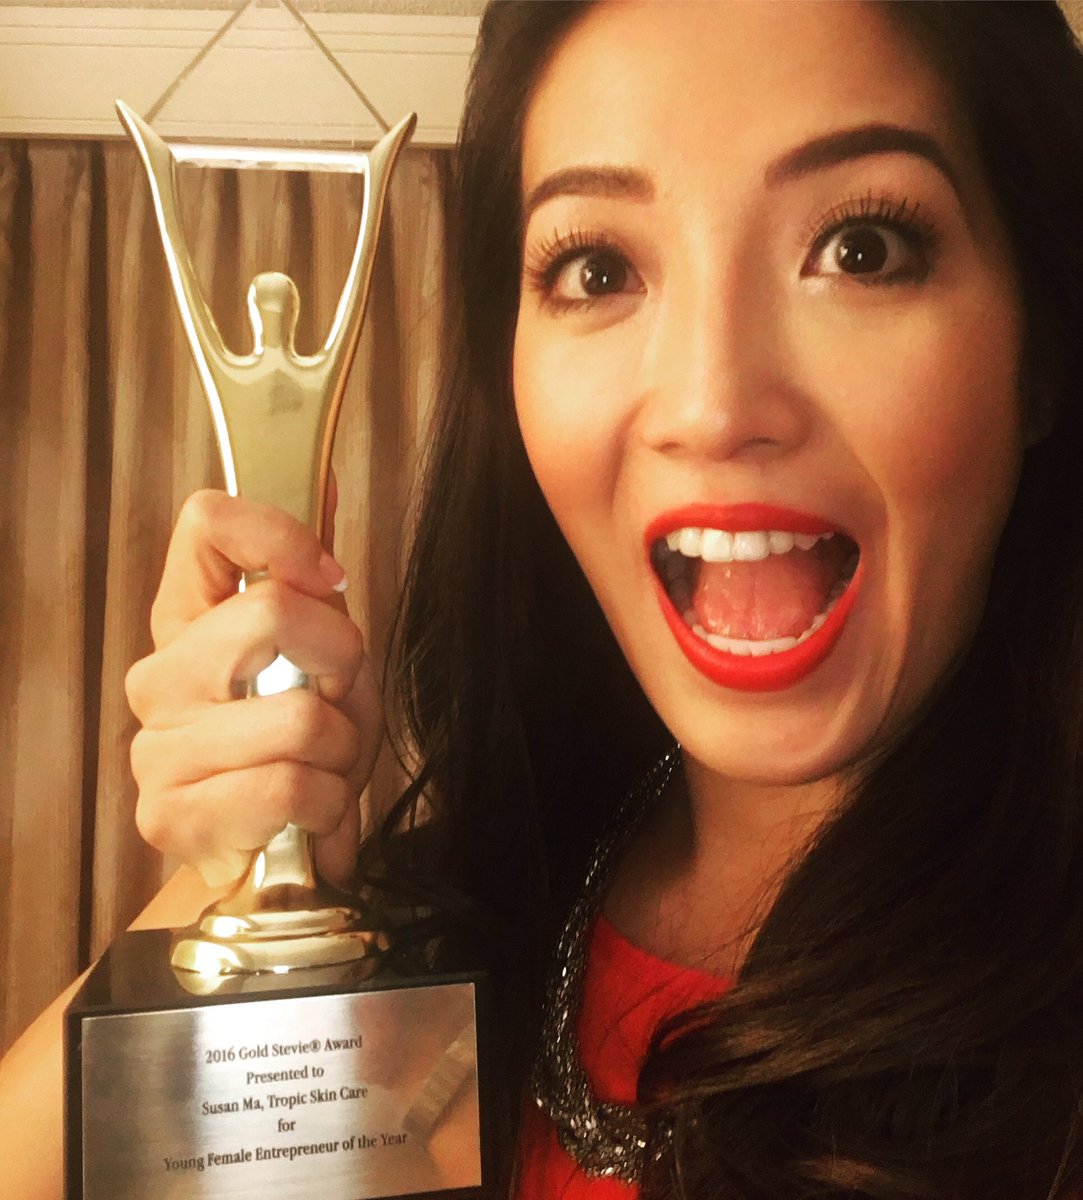 GOLD!!!!! For Young Female Entrepreneur of the Year!! Thank you! #StevieAwards #proudselfie #Honoured #NewYork